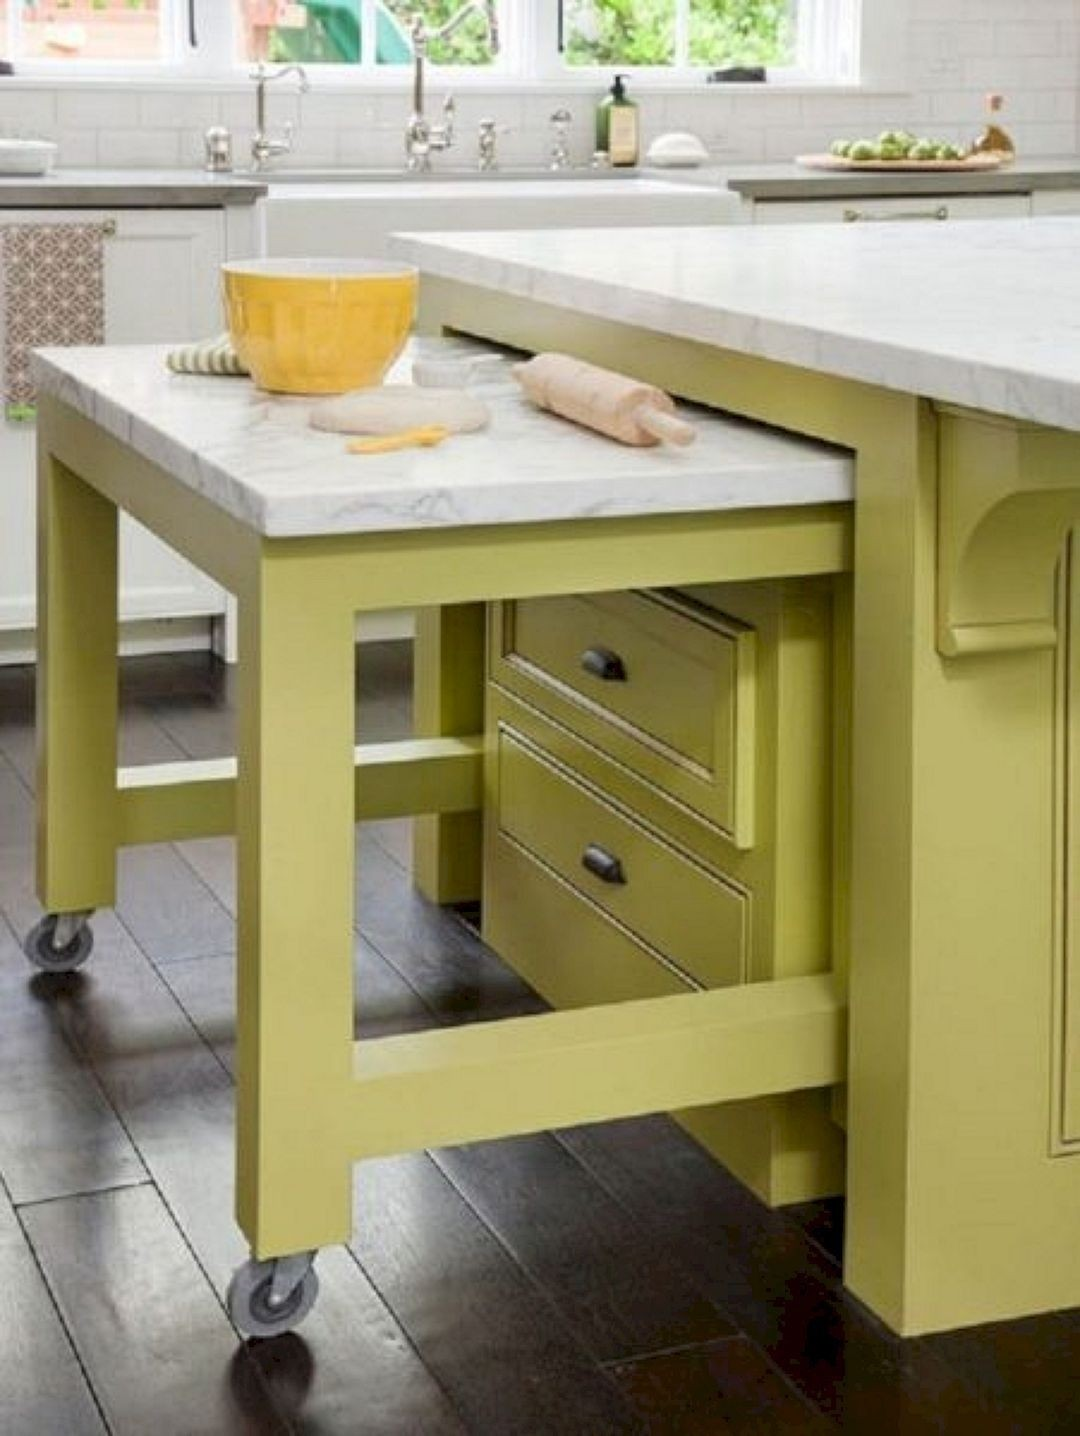 Incroyable Kitchen Island Casters 10